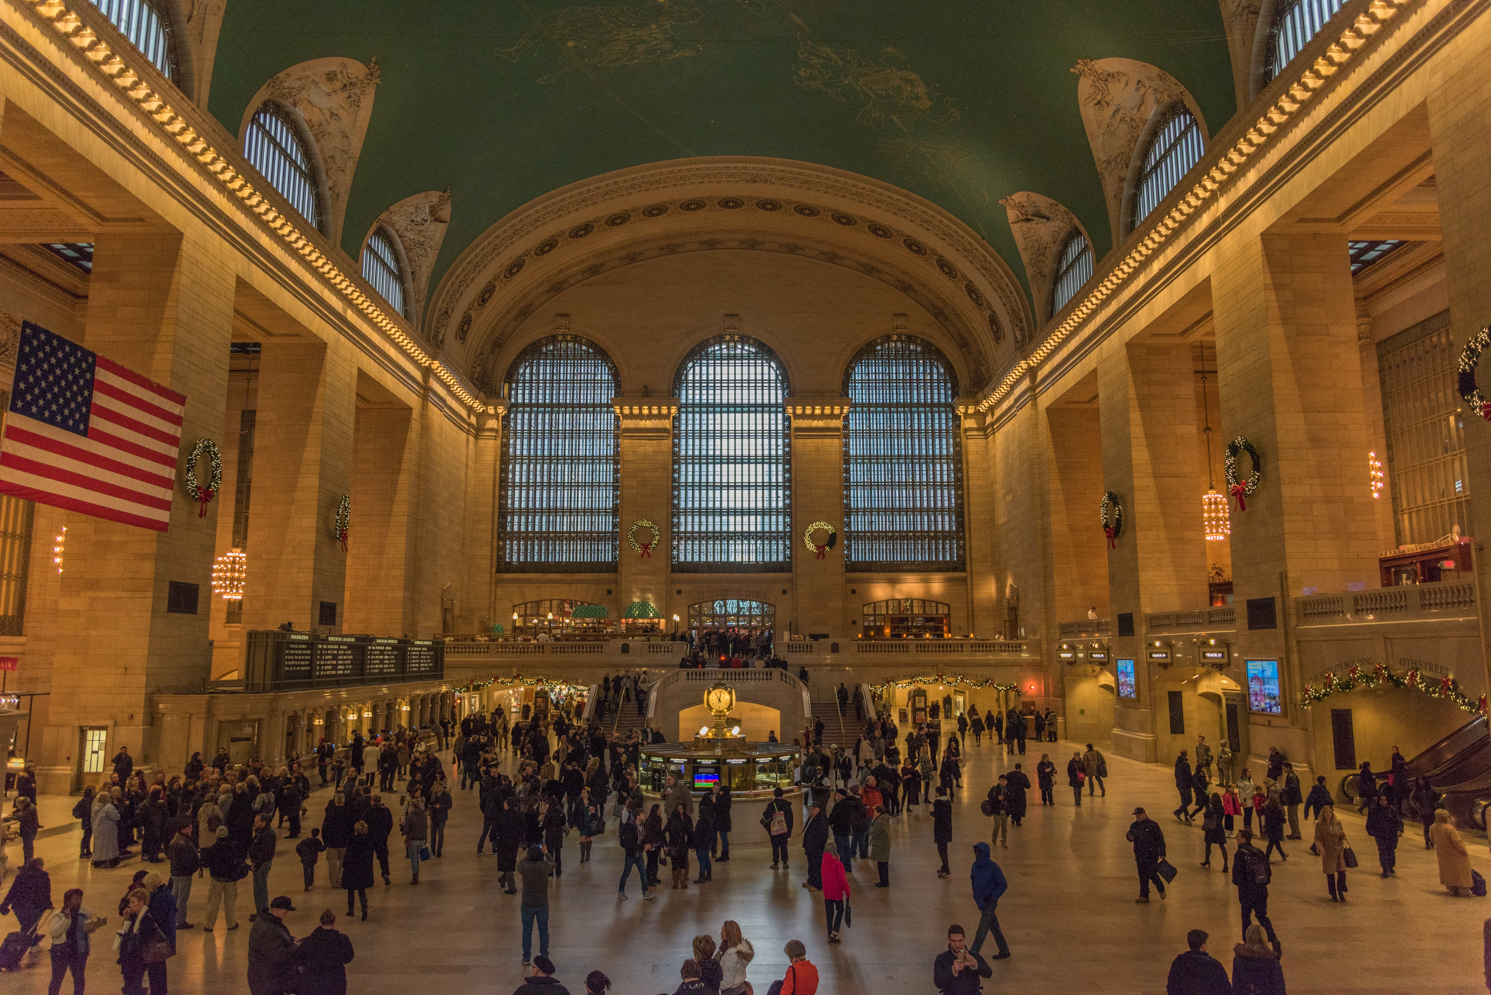 ROCK MAMA NYC LIFESTYLE BLOG - HOLIDAY TIME IN GRAND CENTRAL STATION